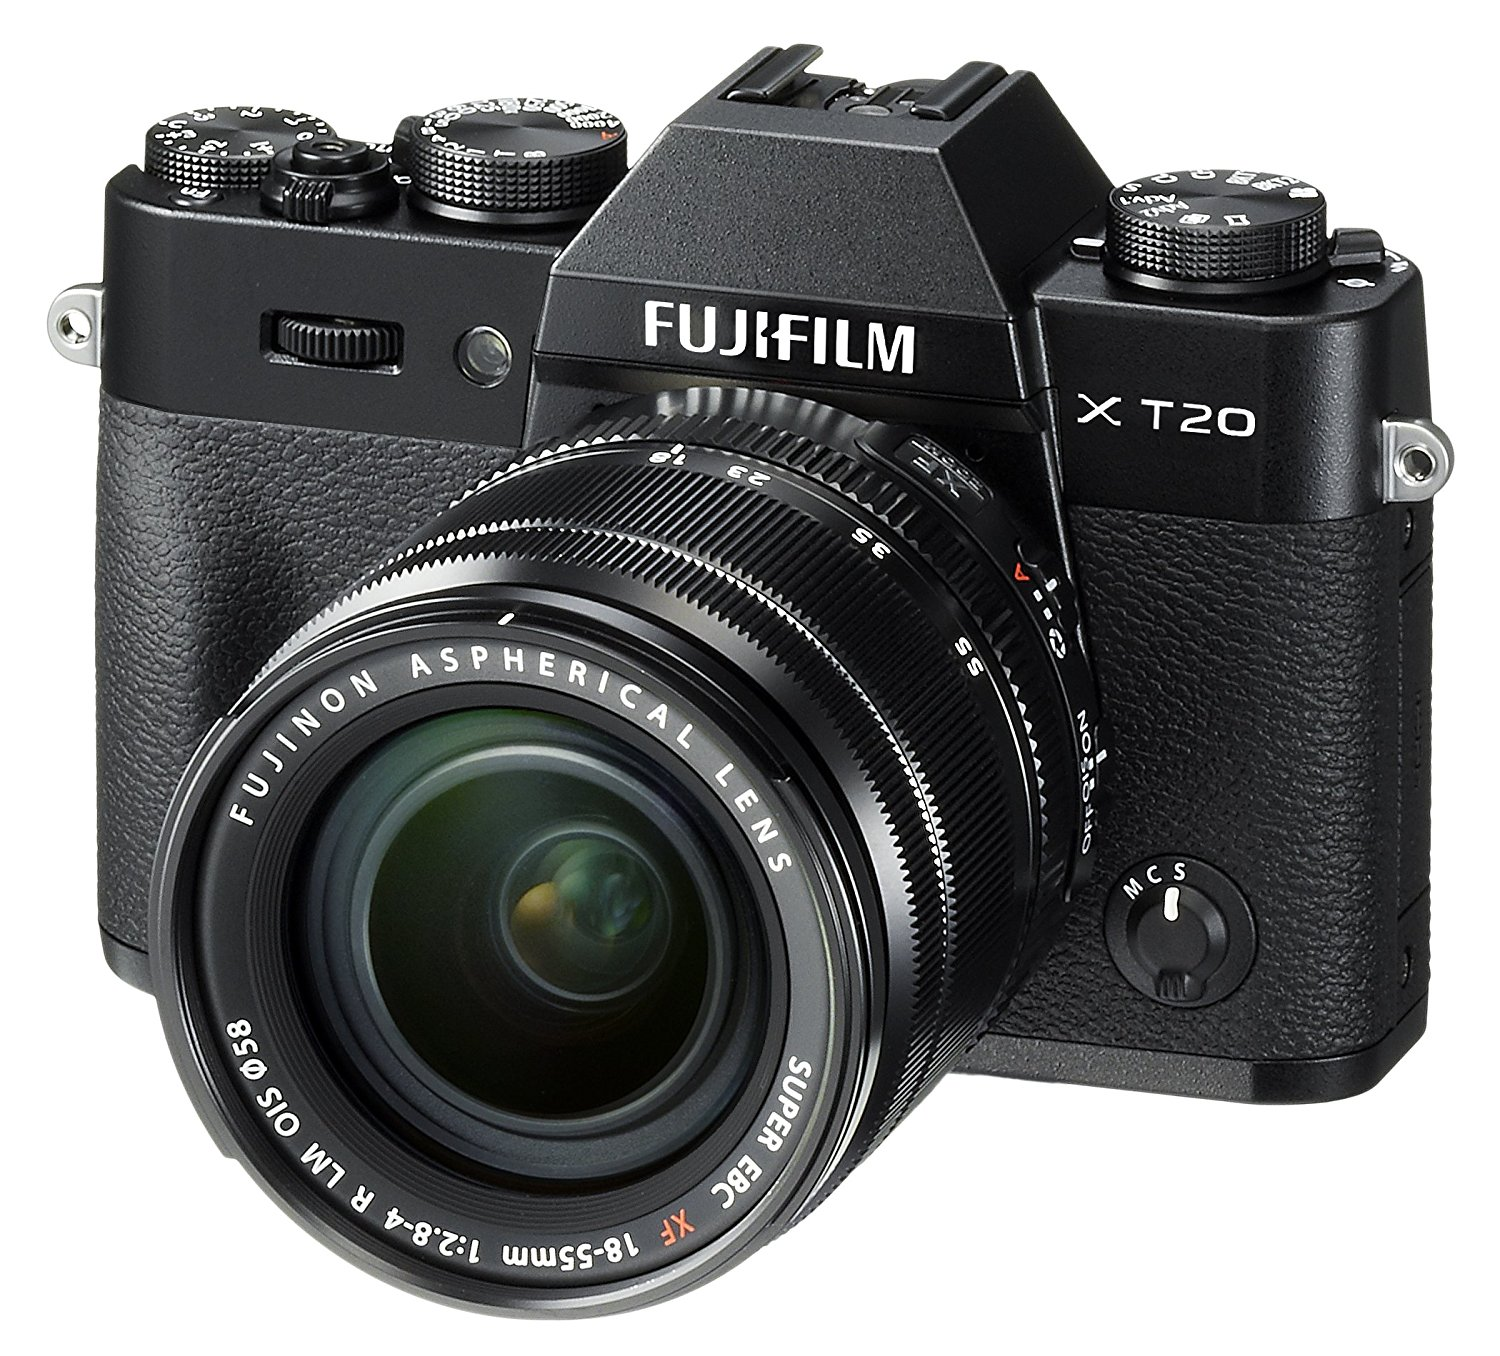 Black Friday & Cyber Monday Fujifilm X-T20 Deals